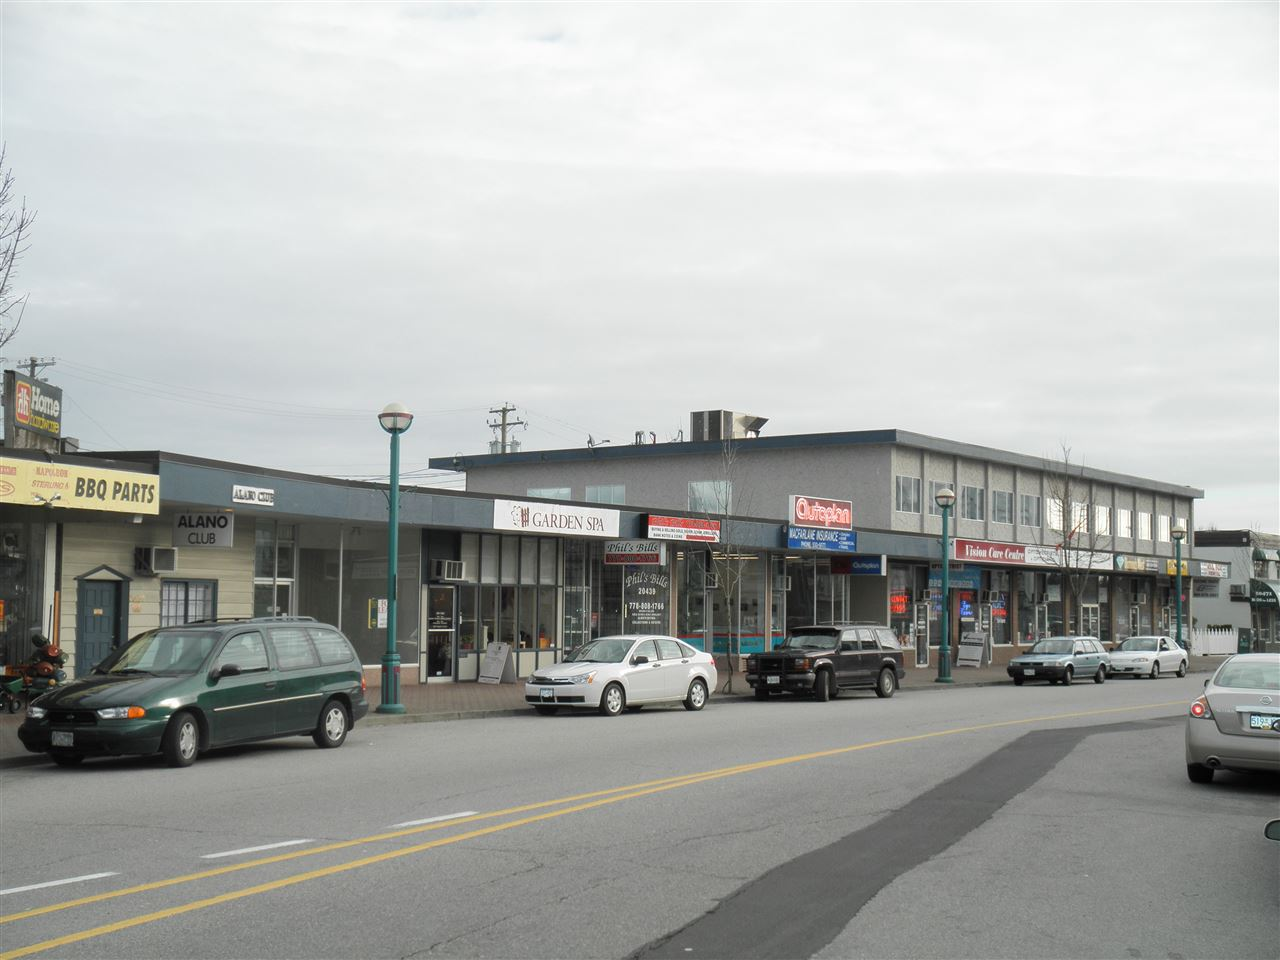 """FOR LEASE"" Commercial Retail Space with Store front & one washroom. C-1 Zoning. 885 SF, Base rent at $13/sf/annum, Additional rent at $6.26/sf/annum, includes 2 parking stalls."